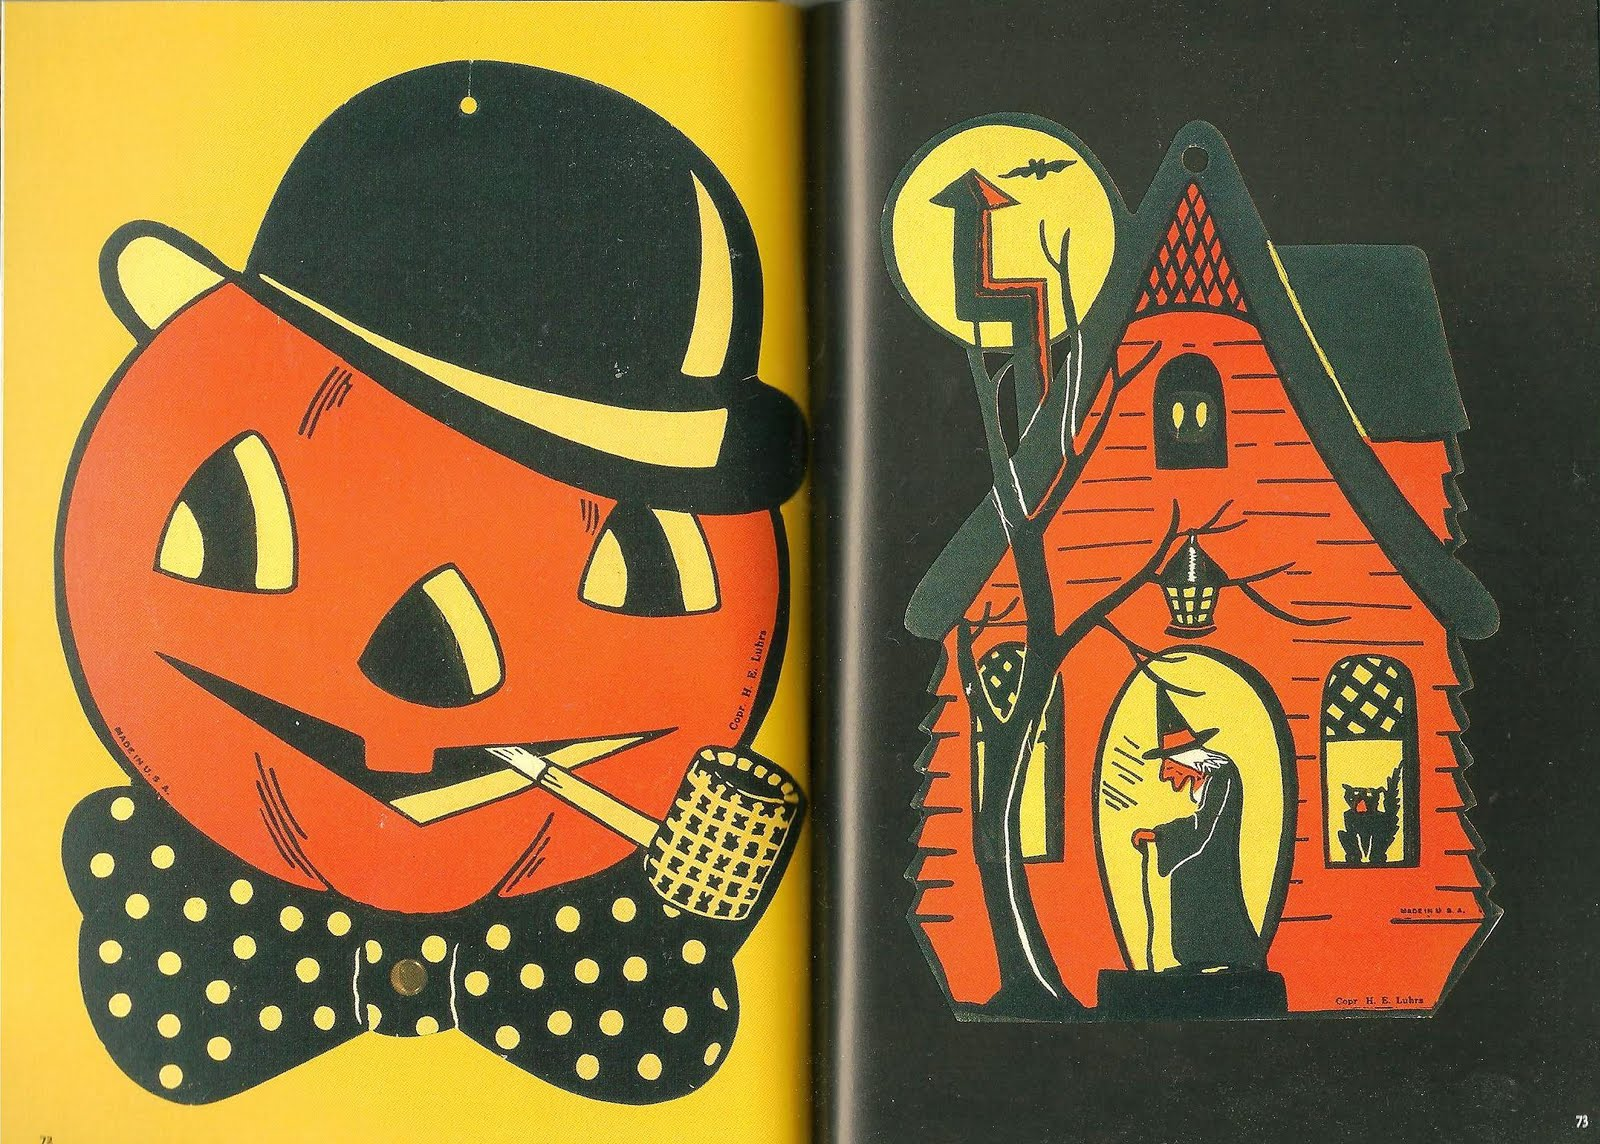 1960s halloween decorations - And Paging Through The Book You May Find Artwork From Your Own Childhood Our Family Had These Very Same Cut Out Decorations